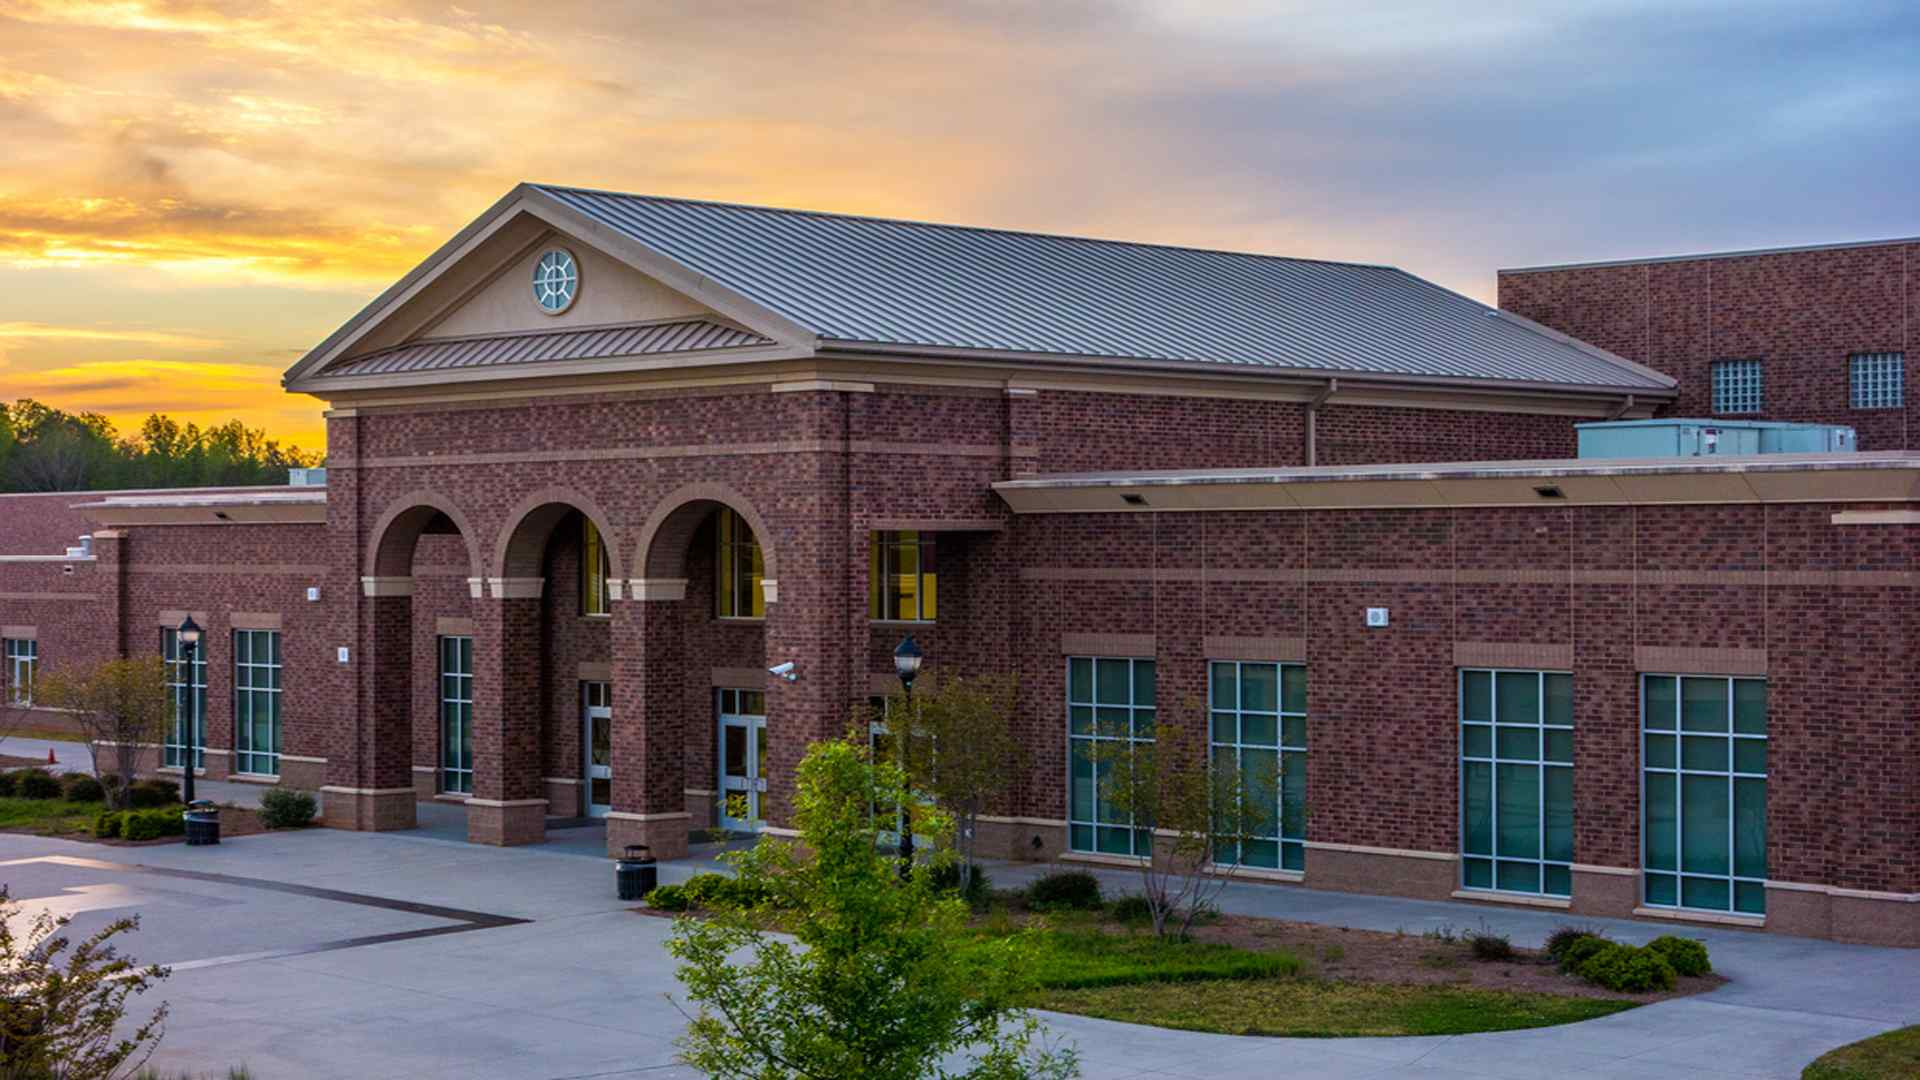 Outside of A School-School Cleaning-Commercial Cleaning Greensboro High Point NC-True Clean Experience-2307 West Cone Blvd Suite G, Greensboro NC 27408-